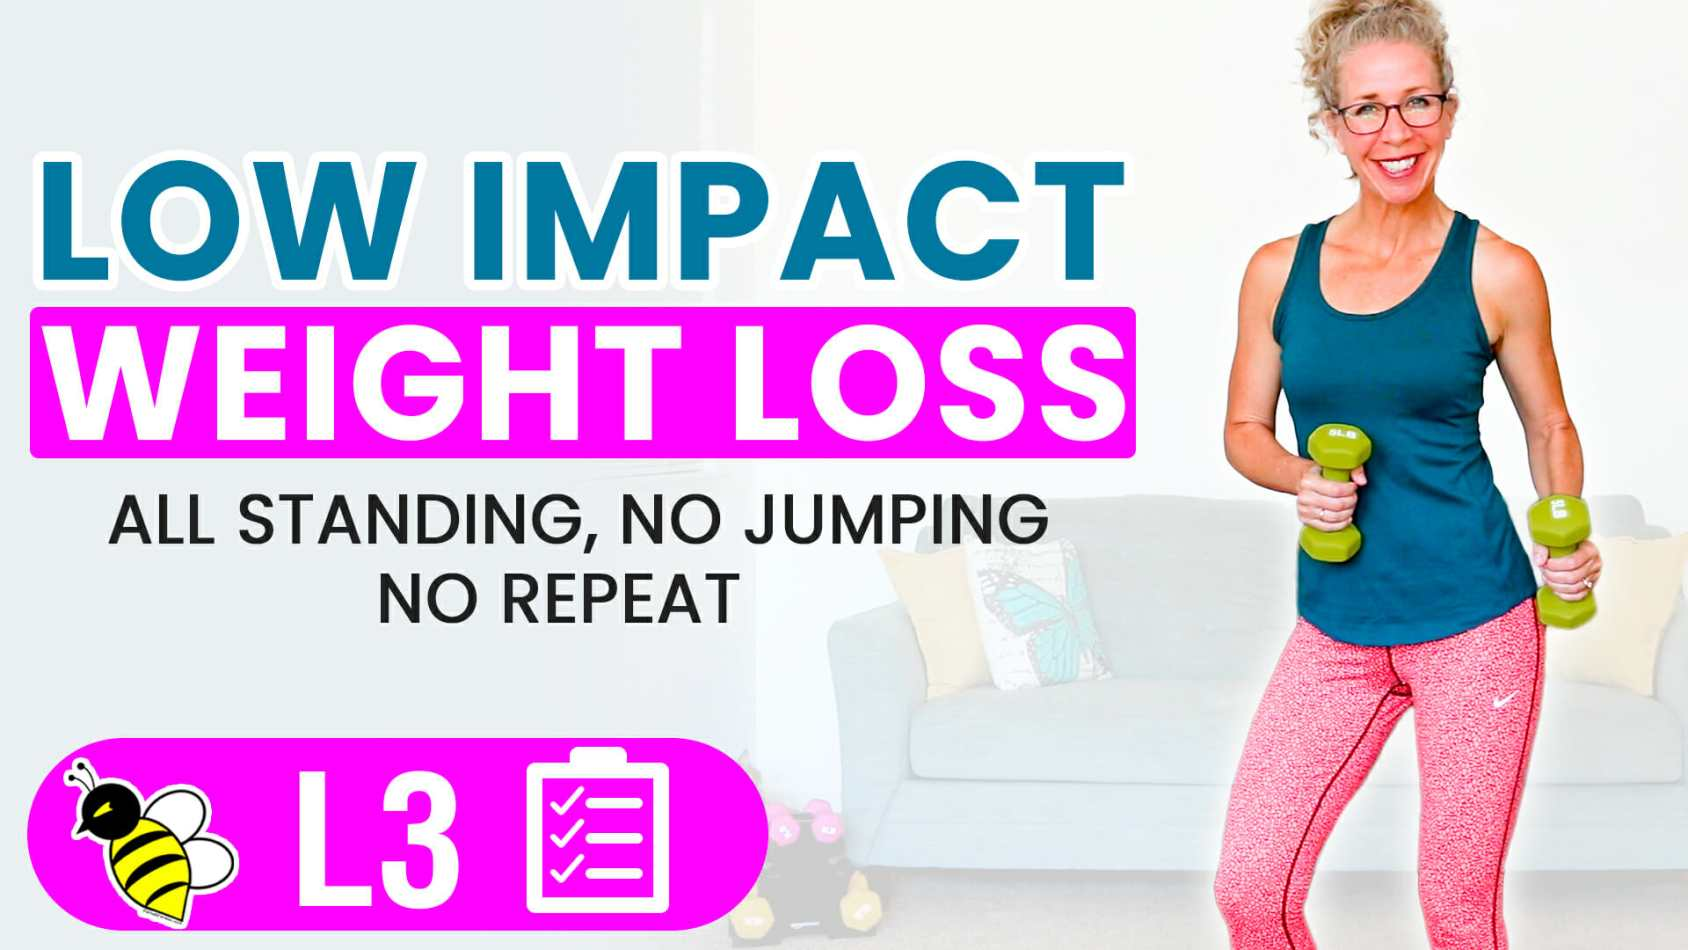 LOW IMPACT MetCon 30 Minute Cardio + Weights Workout for WEIGHT LOSS